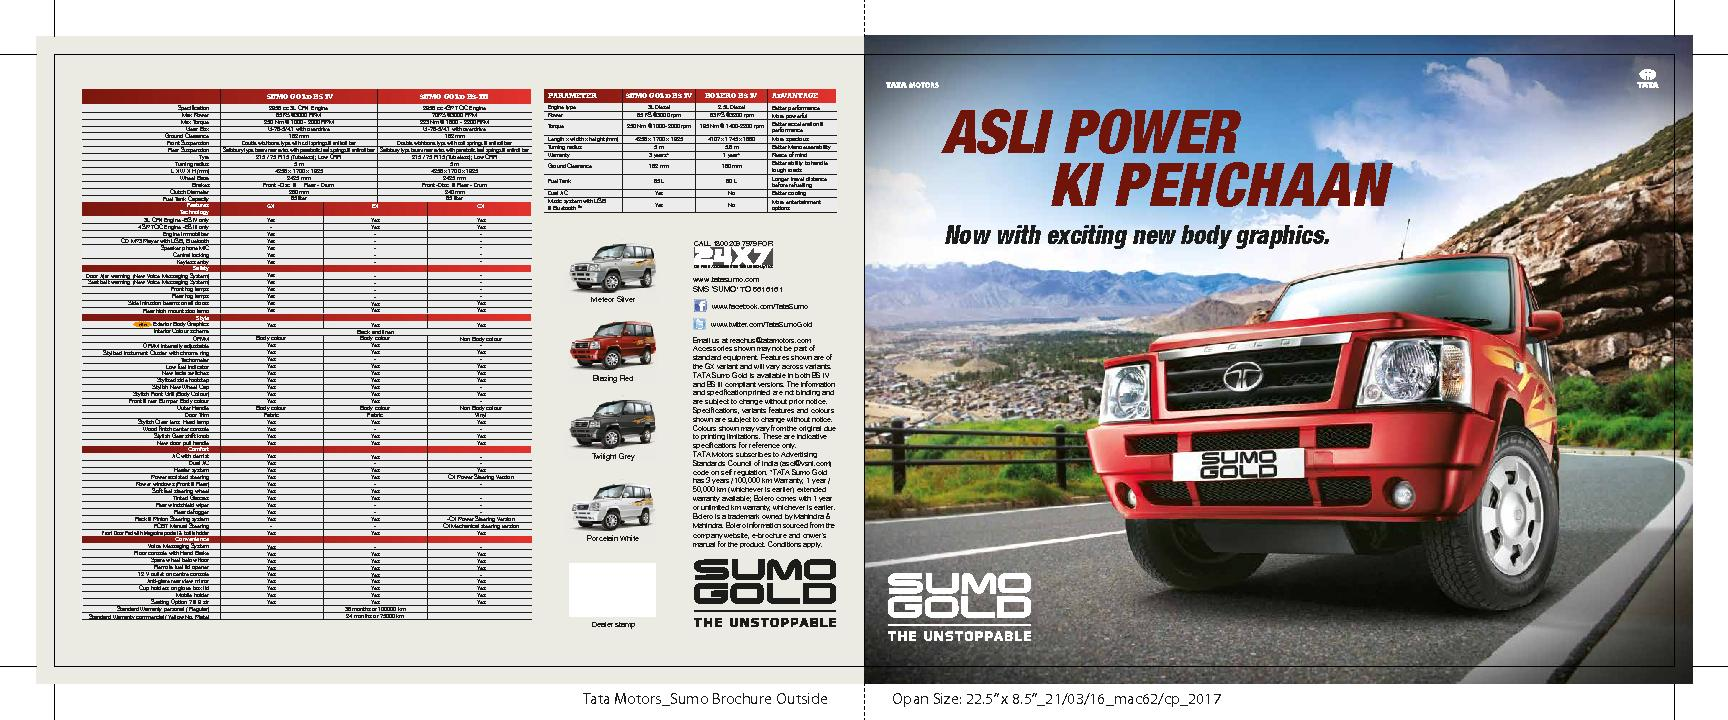 Now with exciting Tata Motors_Sumo Brochure Outside